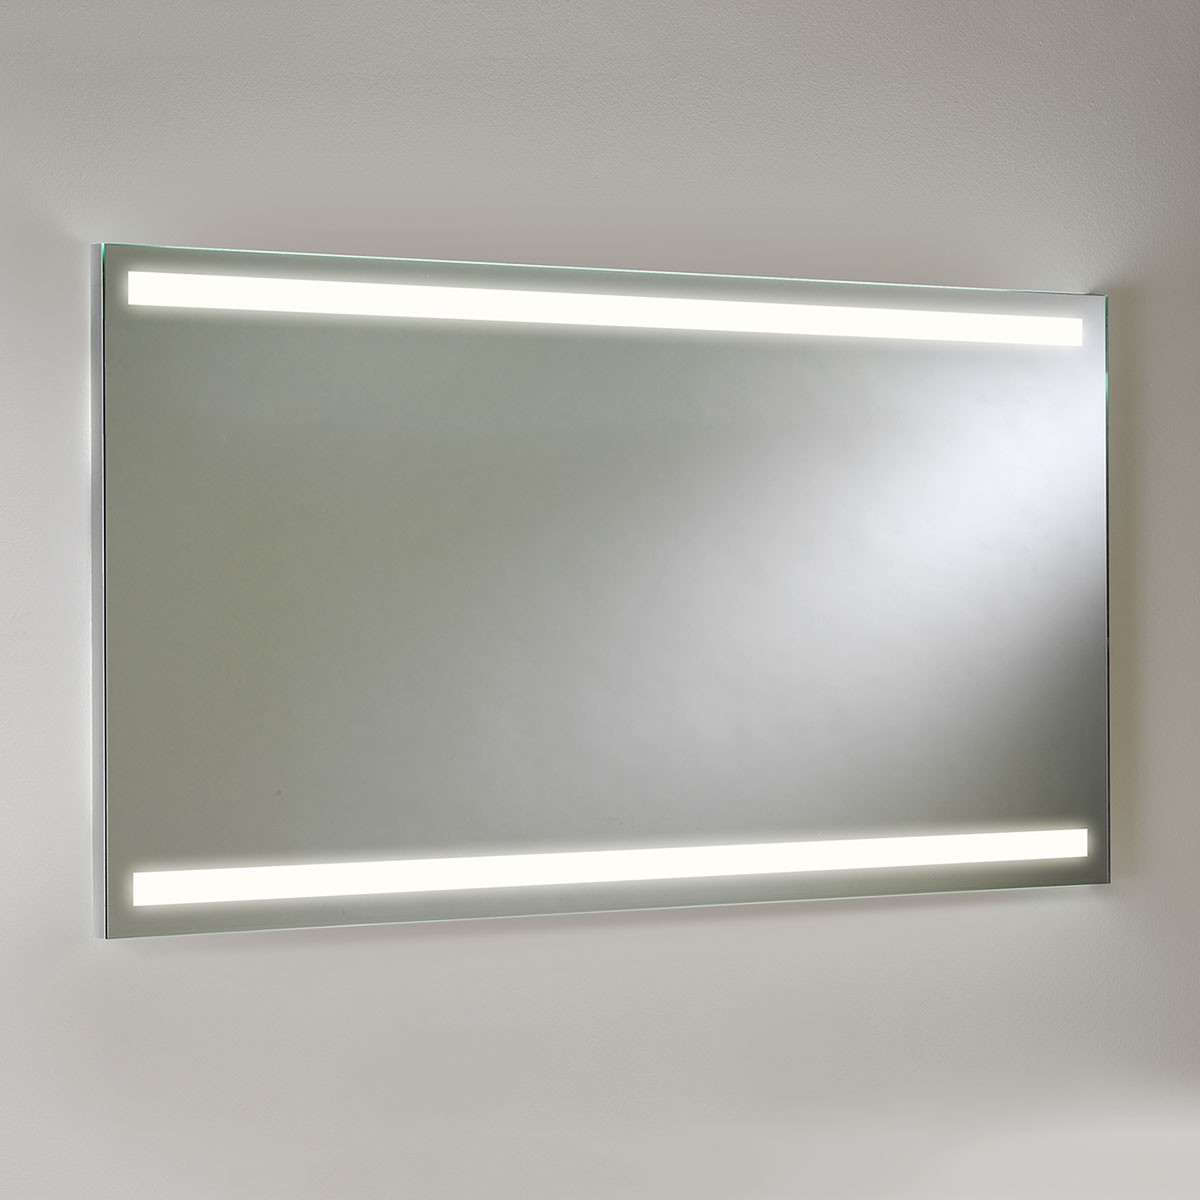 Astro avlon 900 led bathroom mirror light at uk electrical for Miroir salle de bain led